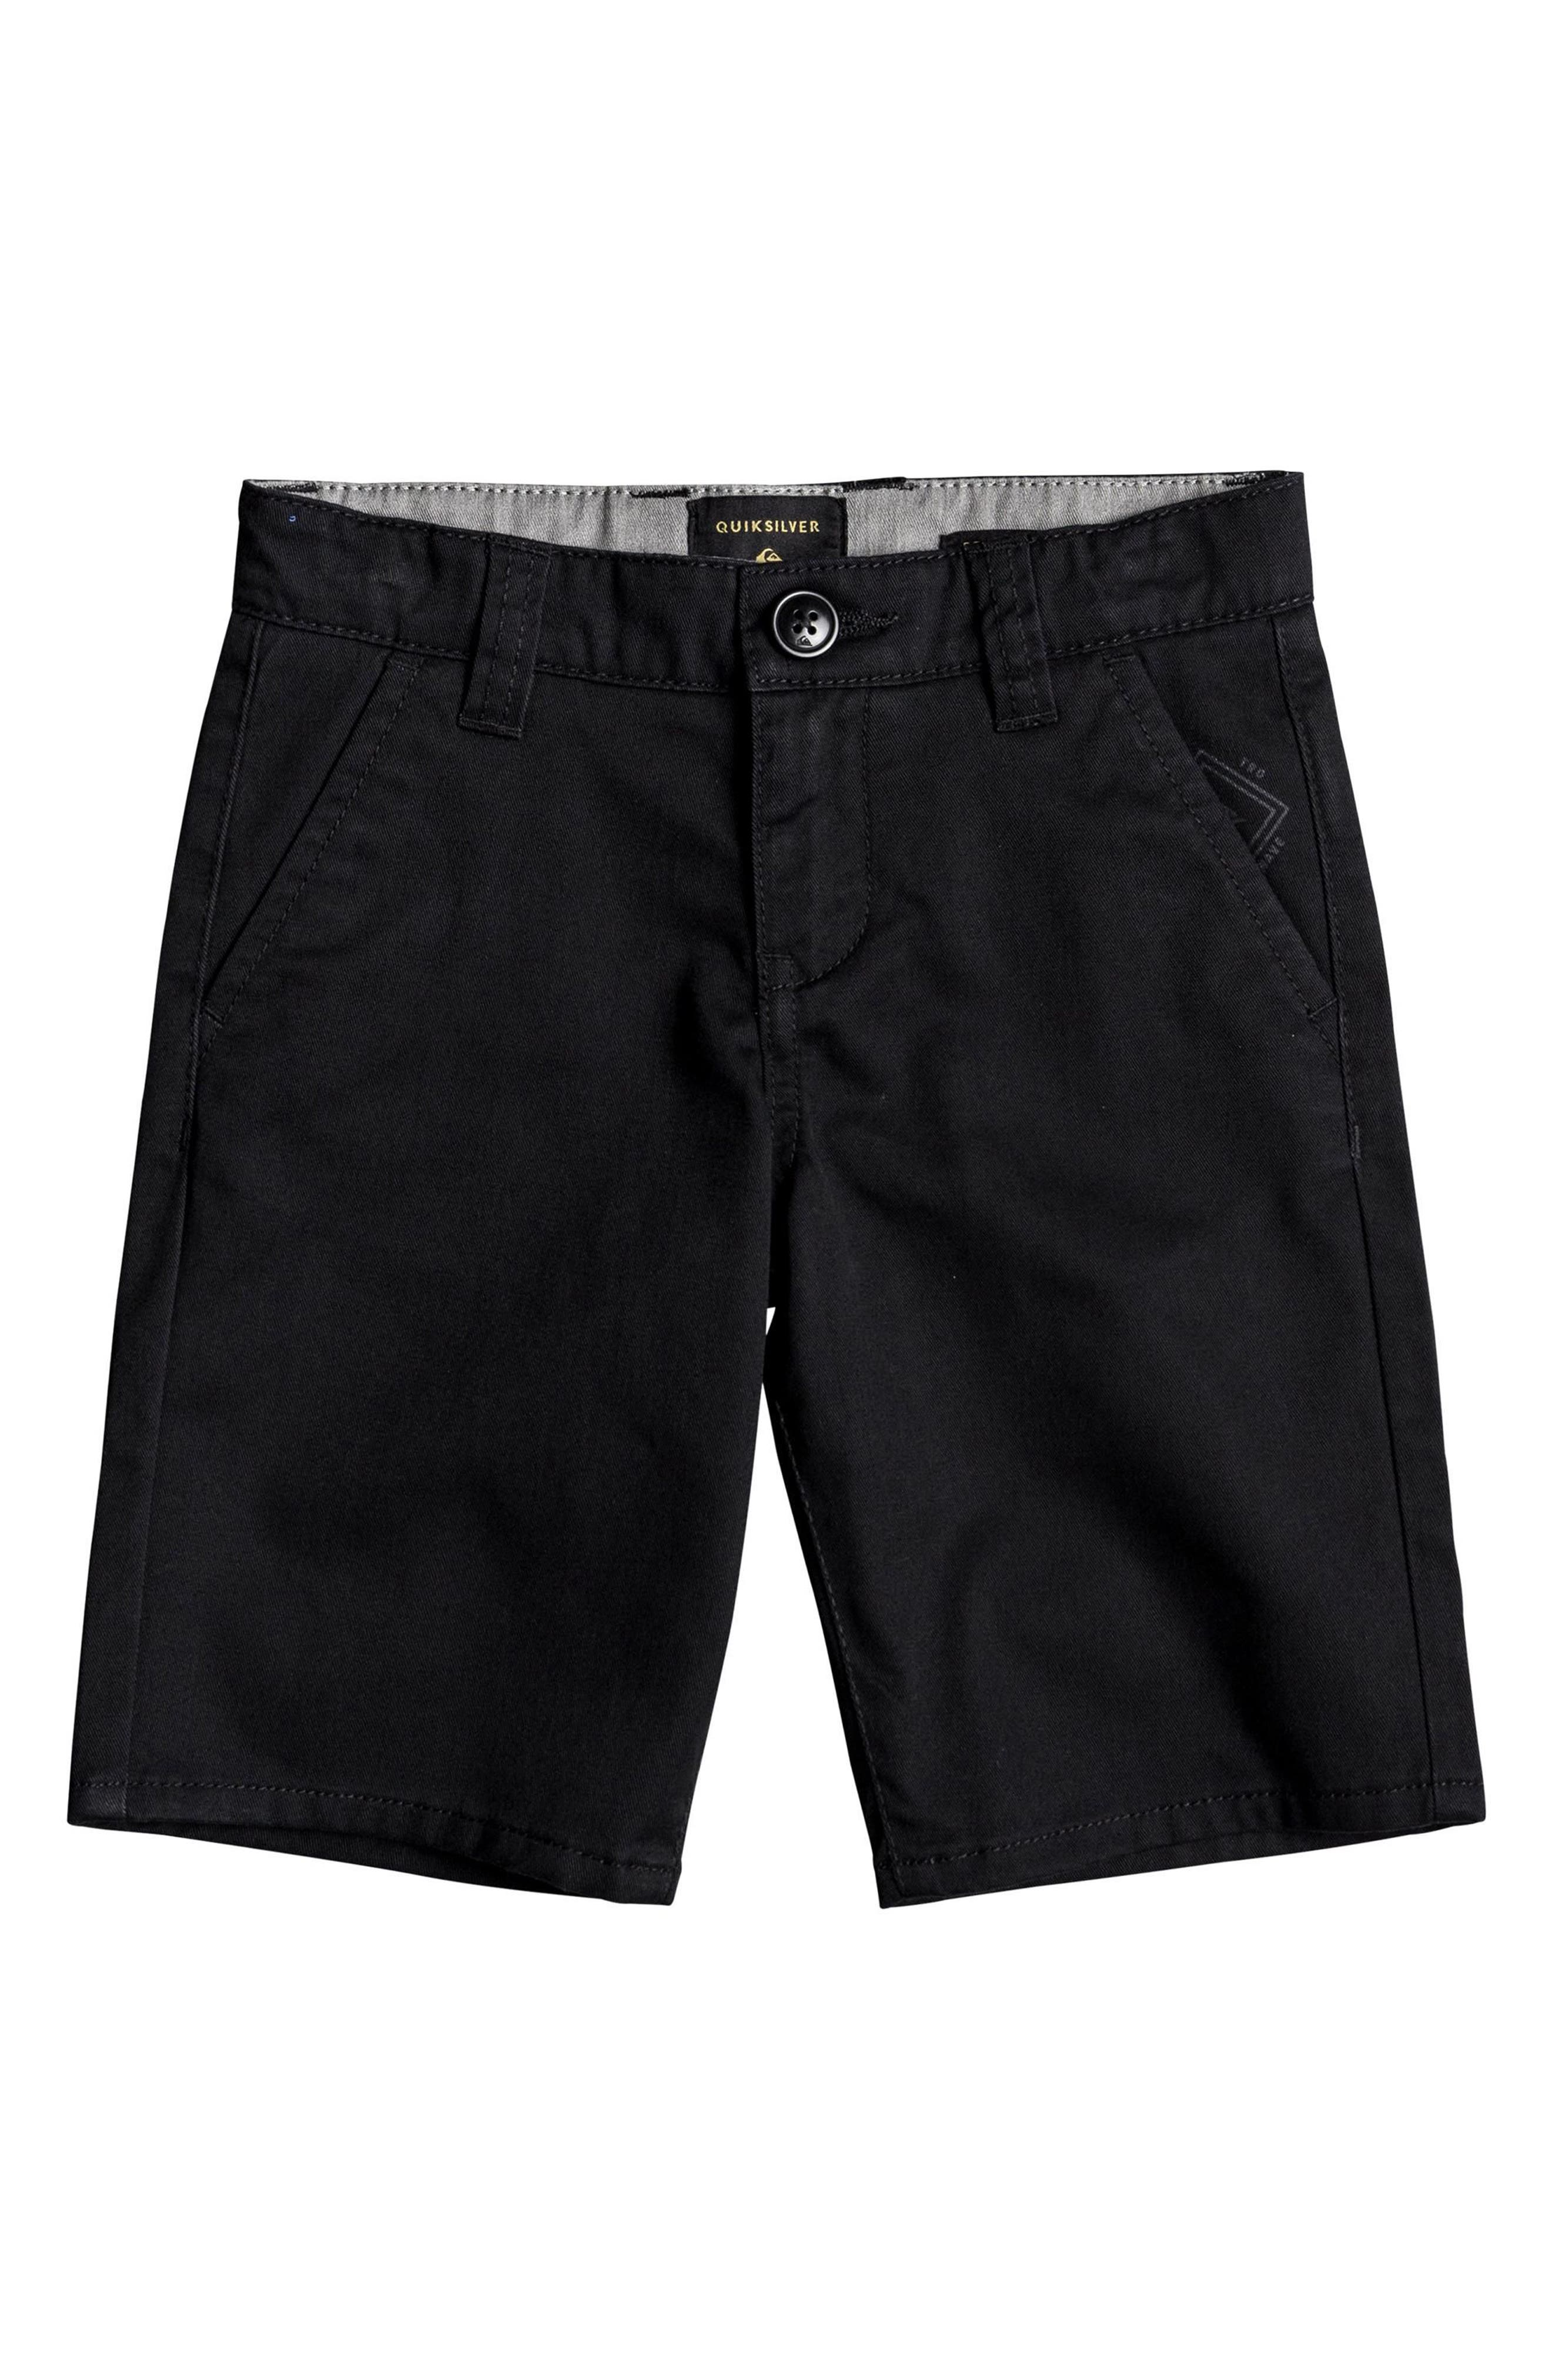 Everyday Union Stretch Shorts,                         Main,                         color, BLACK